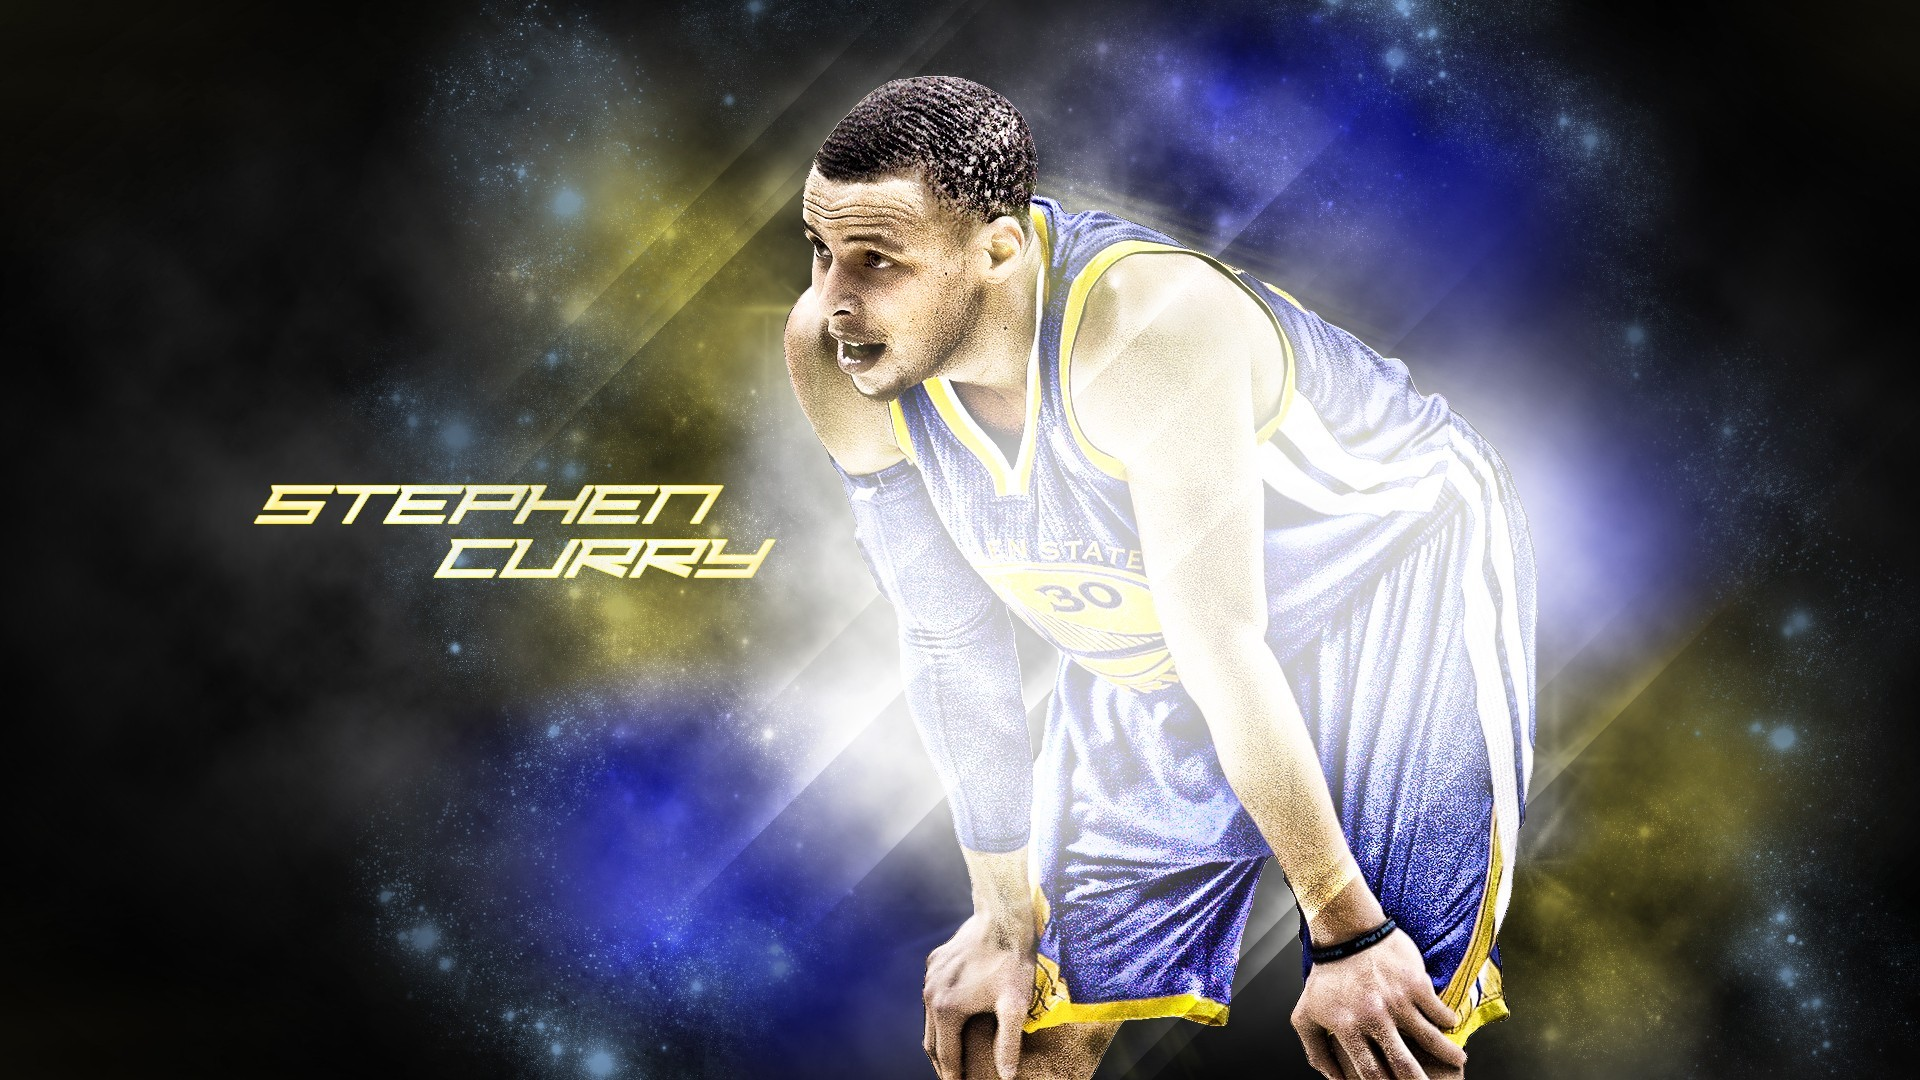 1920x1080 Stephen Curry Background Desktop | PixelsTalk.Net